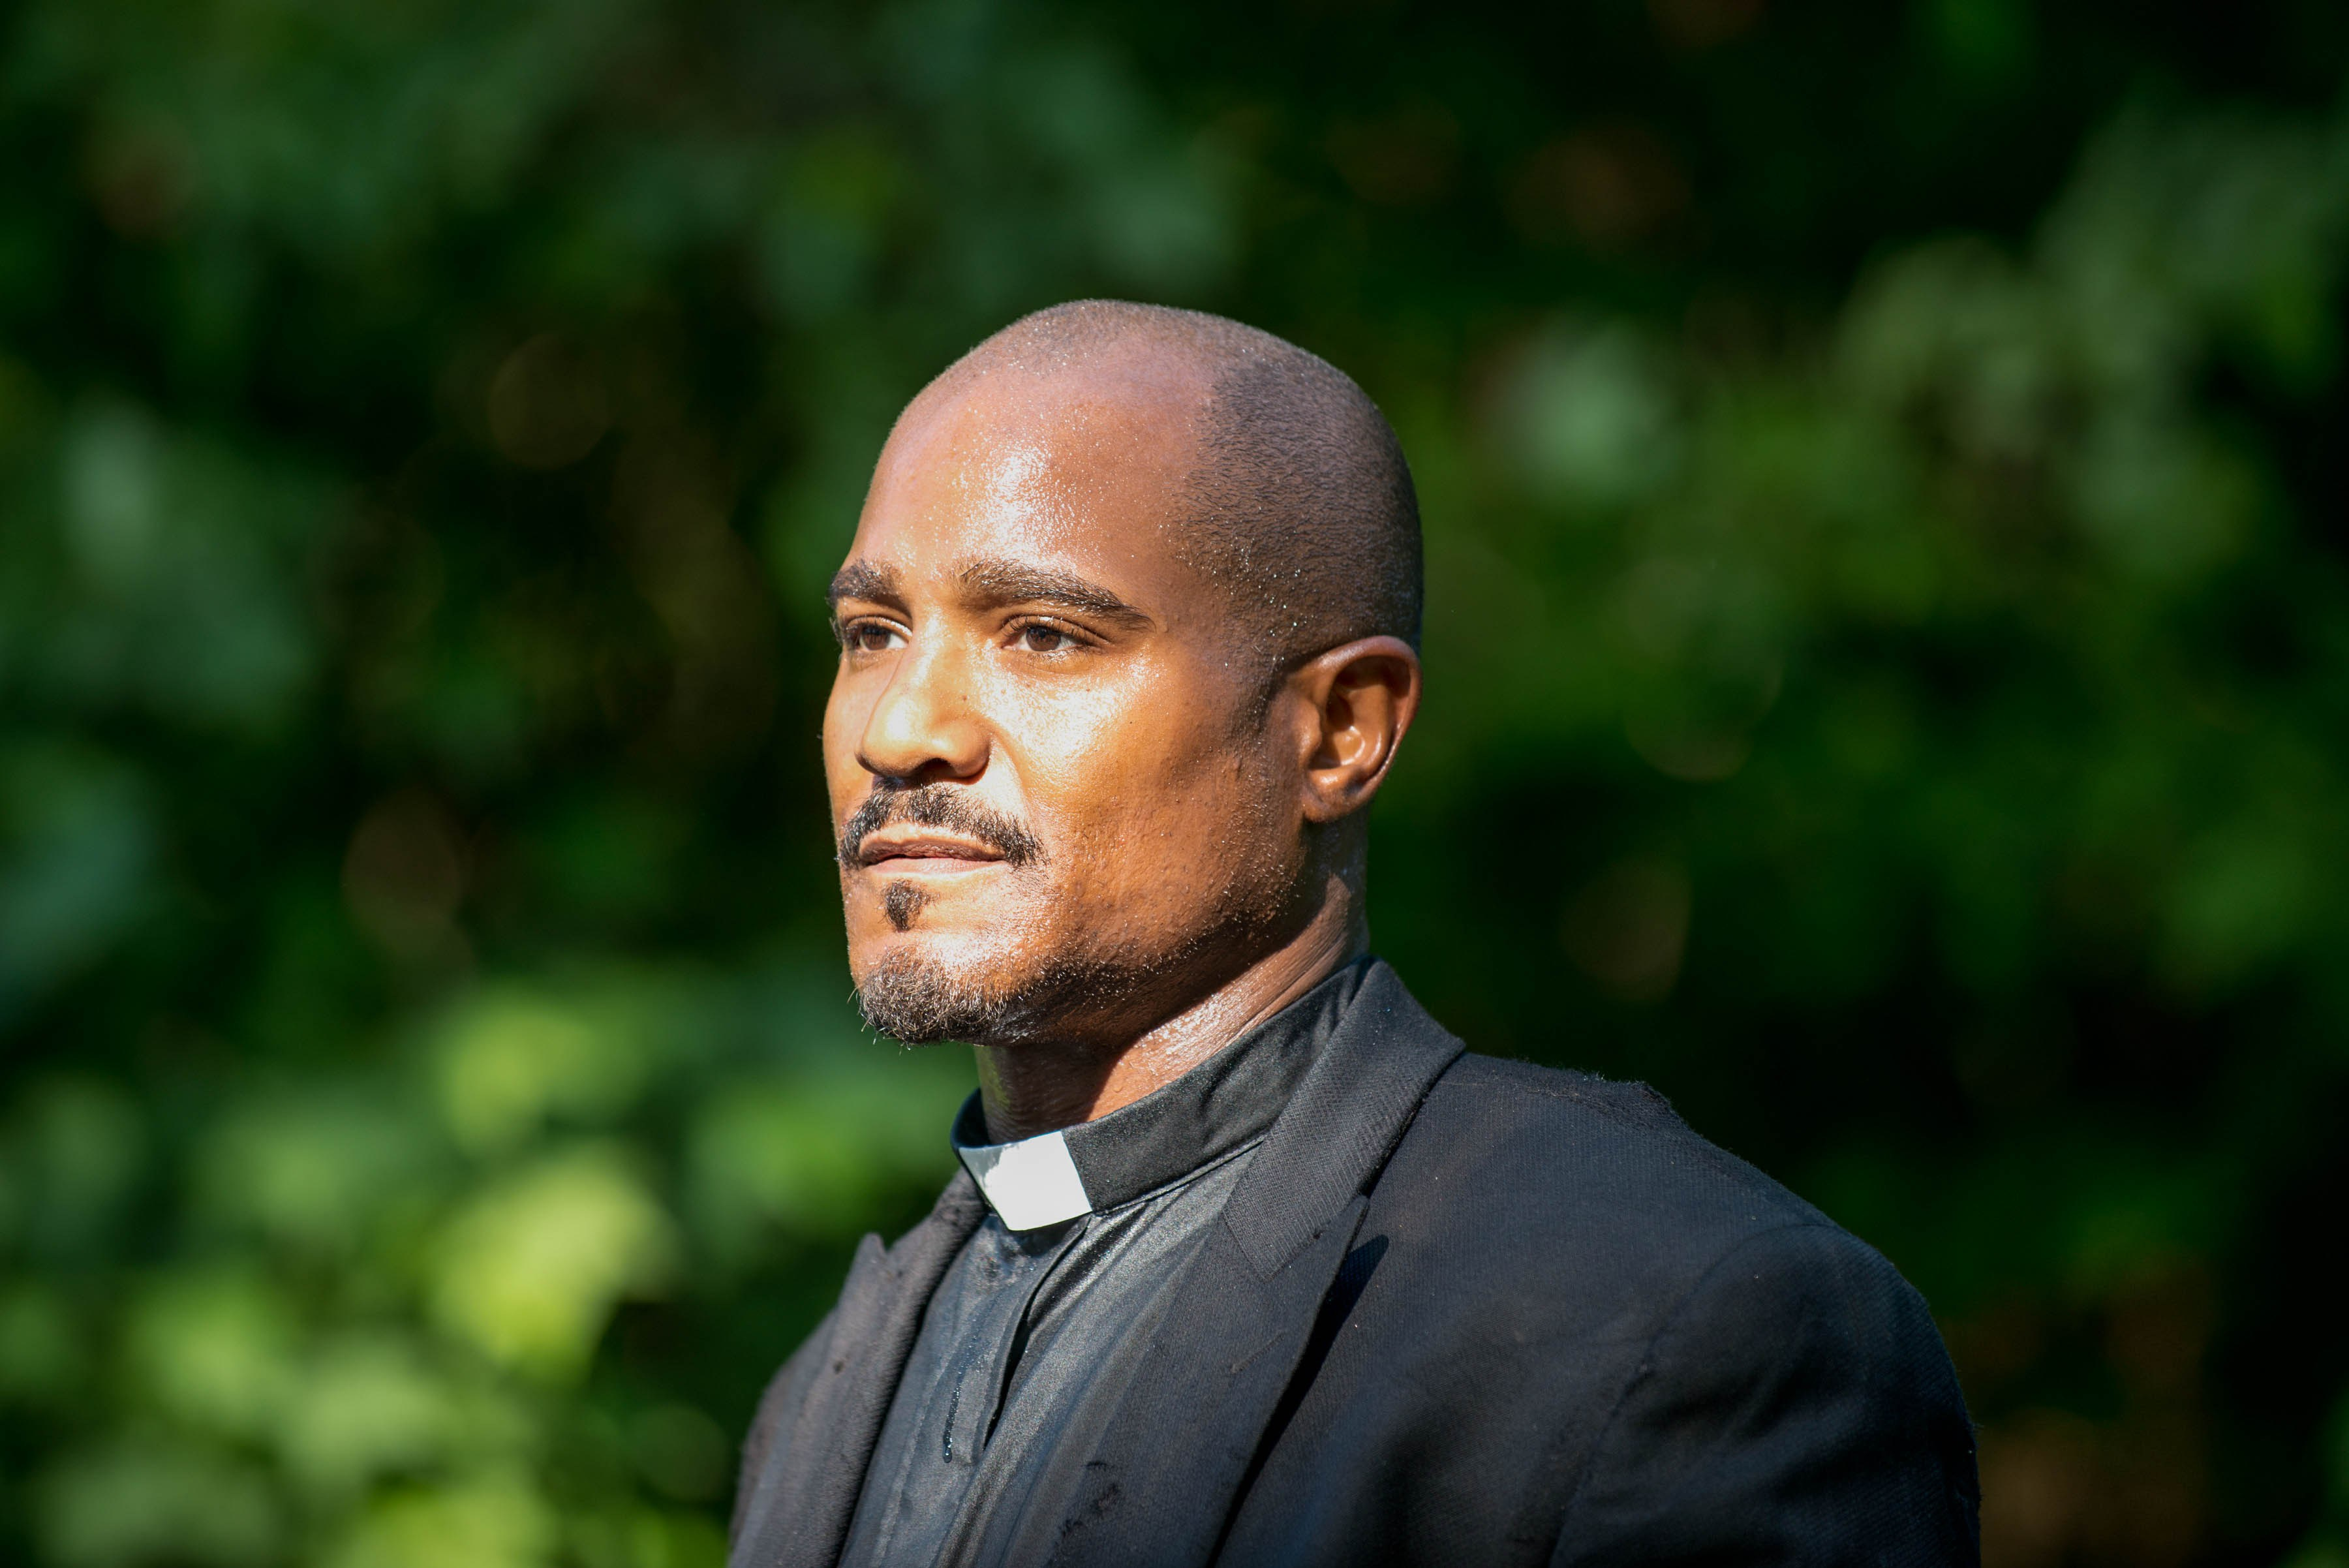 Padre-Gabriel-The-Walking-Dead-5-Temporada-S05E02